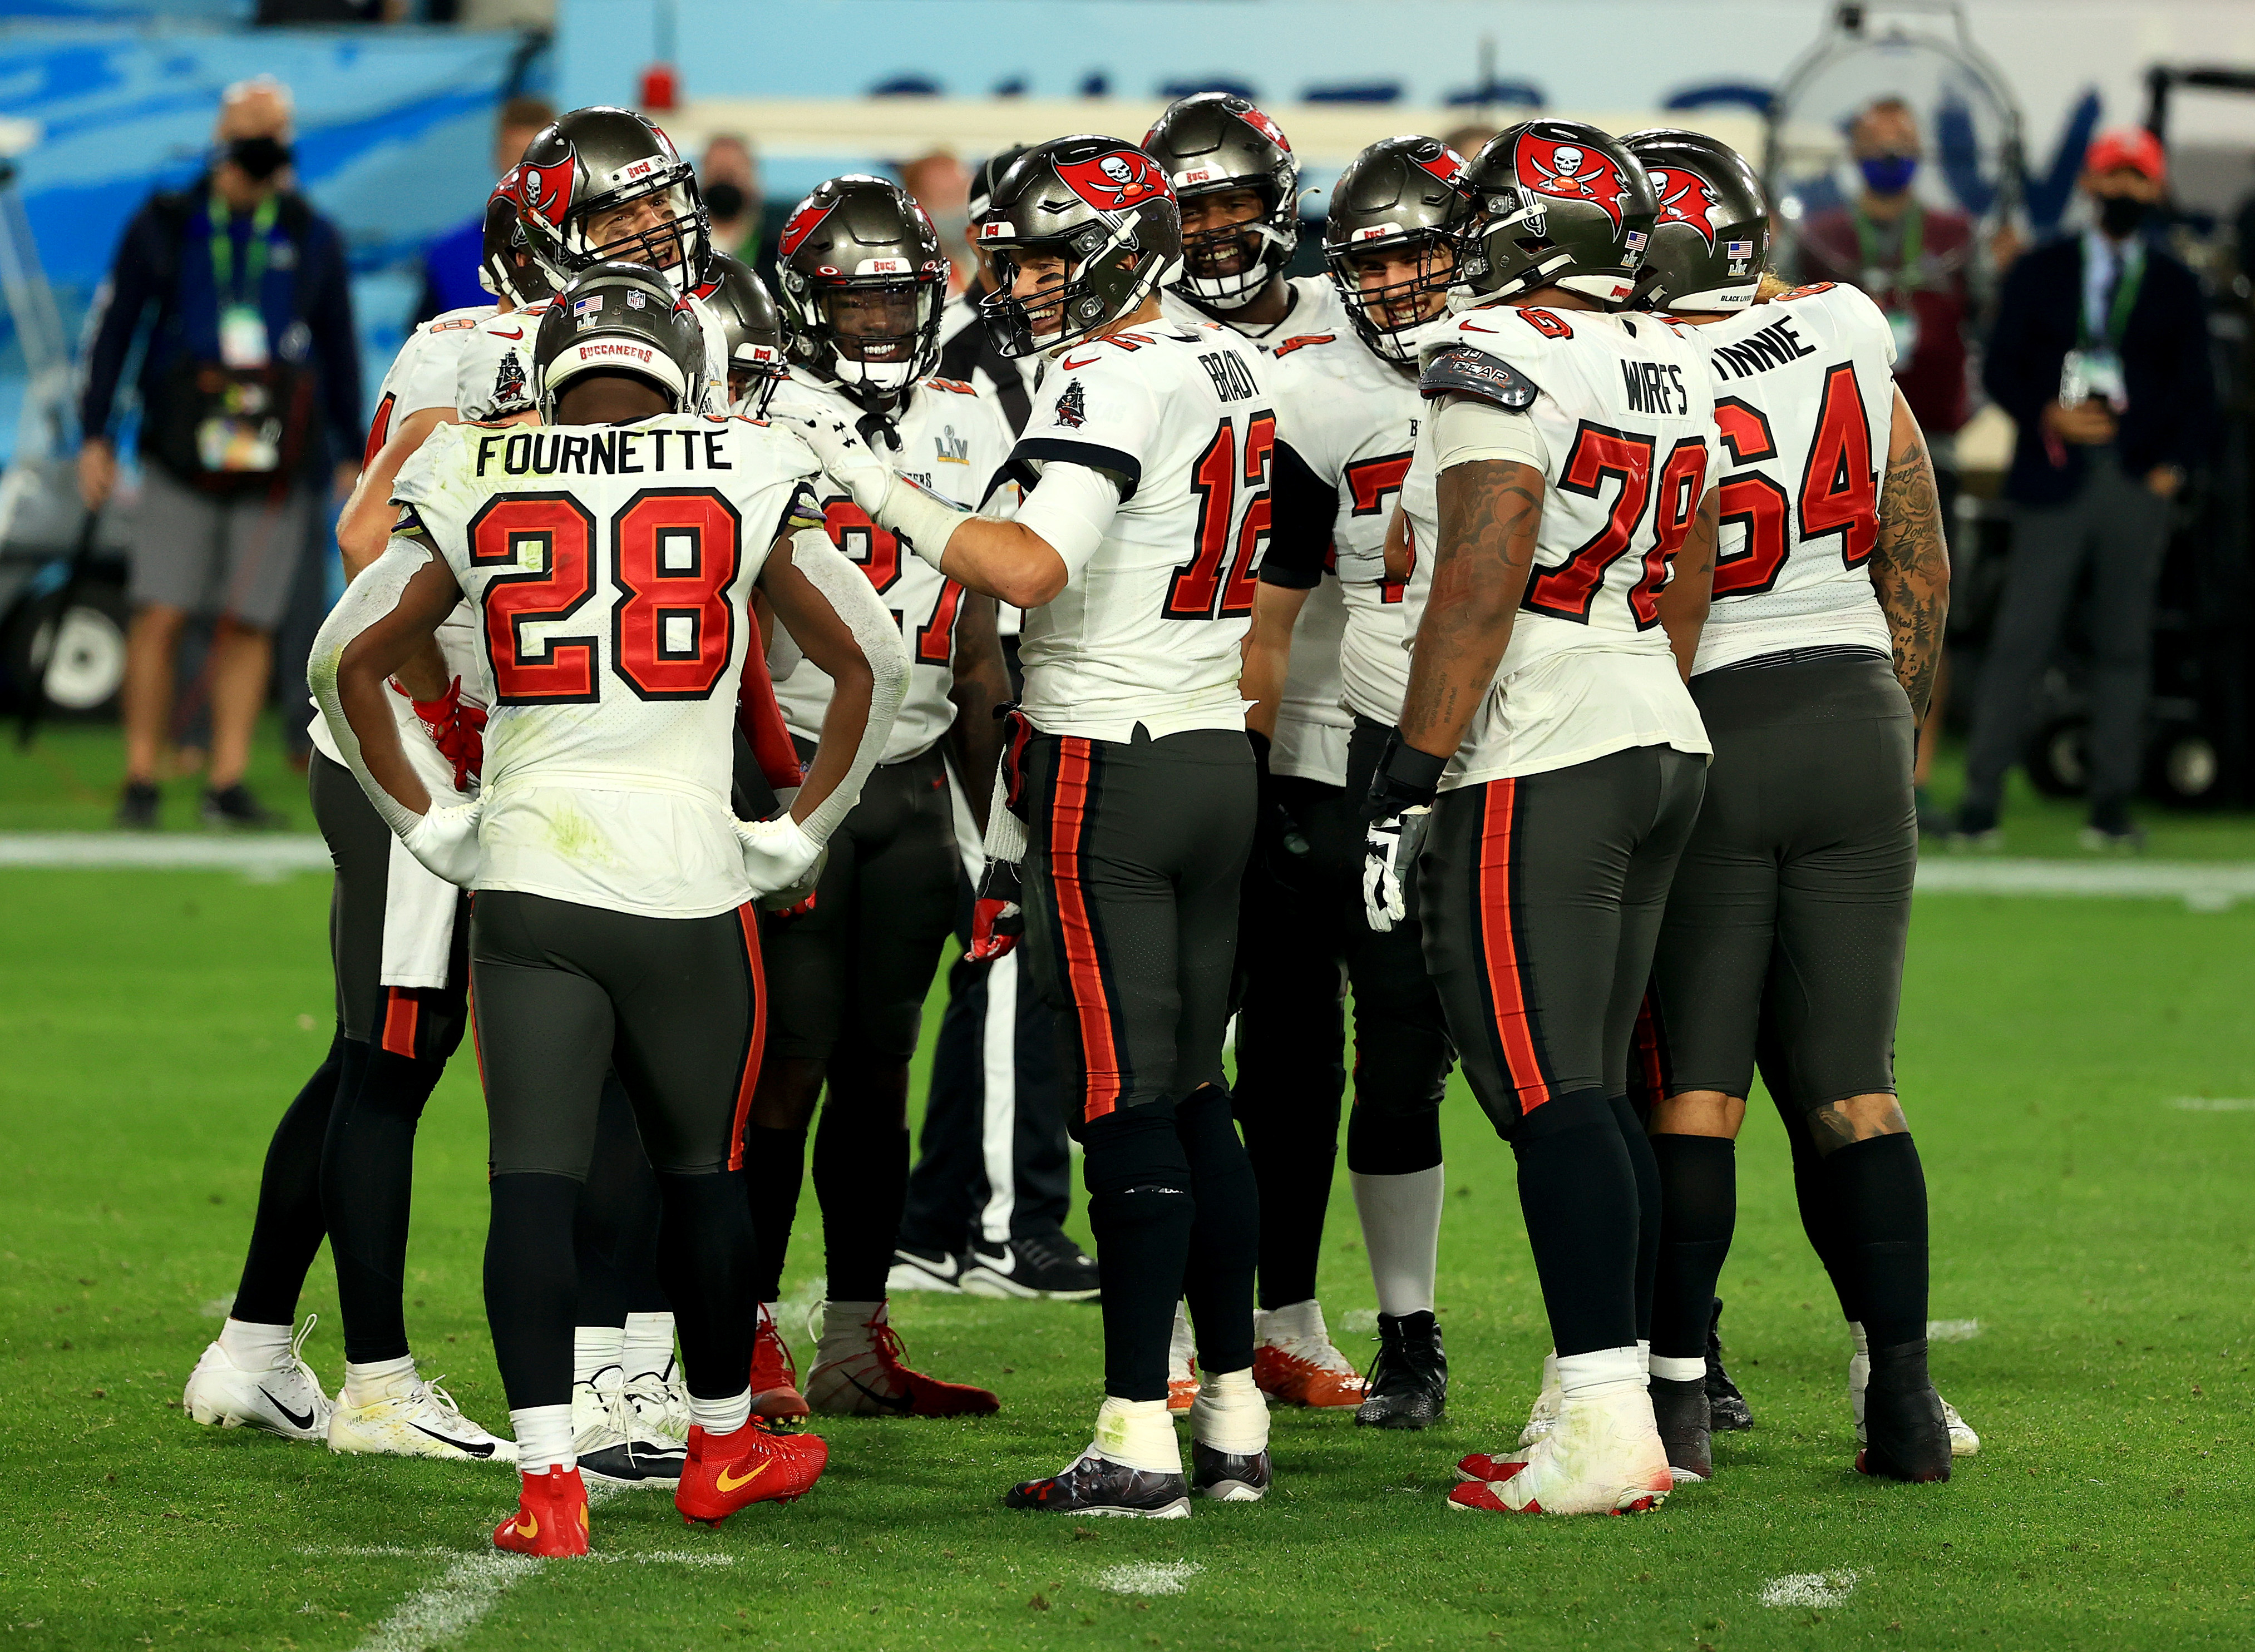 Tom Brady #12 of the Tampa Bay Buccaneers reacts with teammates late in the fourth quarter against the Kansas City Chiefs in Super Bowl LV at Raymond James Stadium on February 07, 2021 in Tampa, Florida.